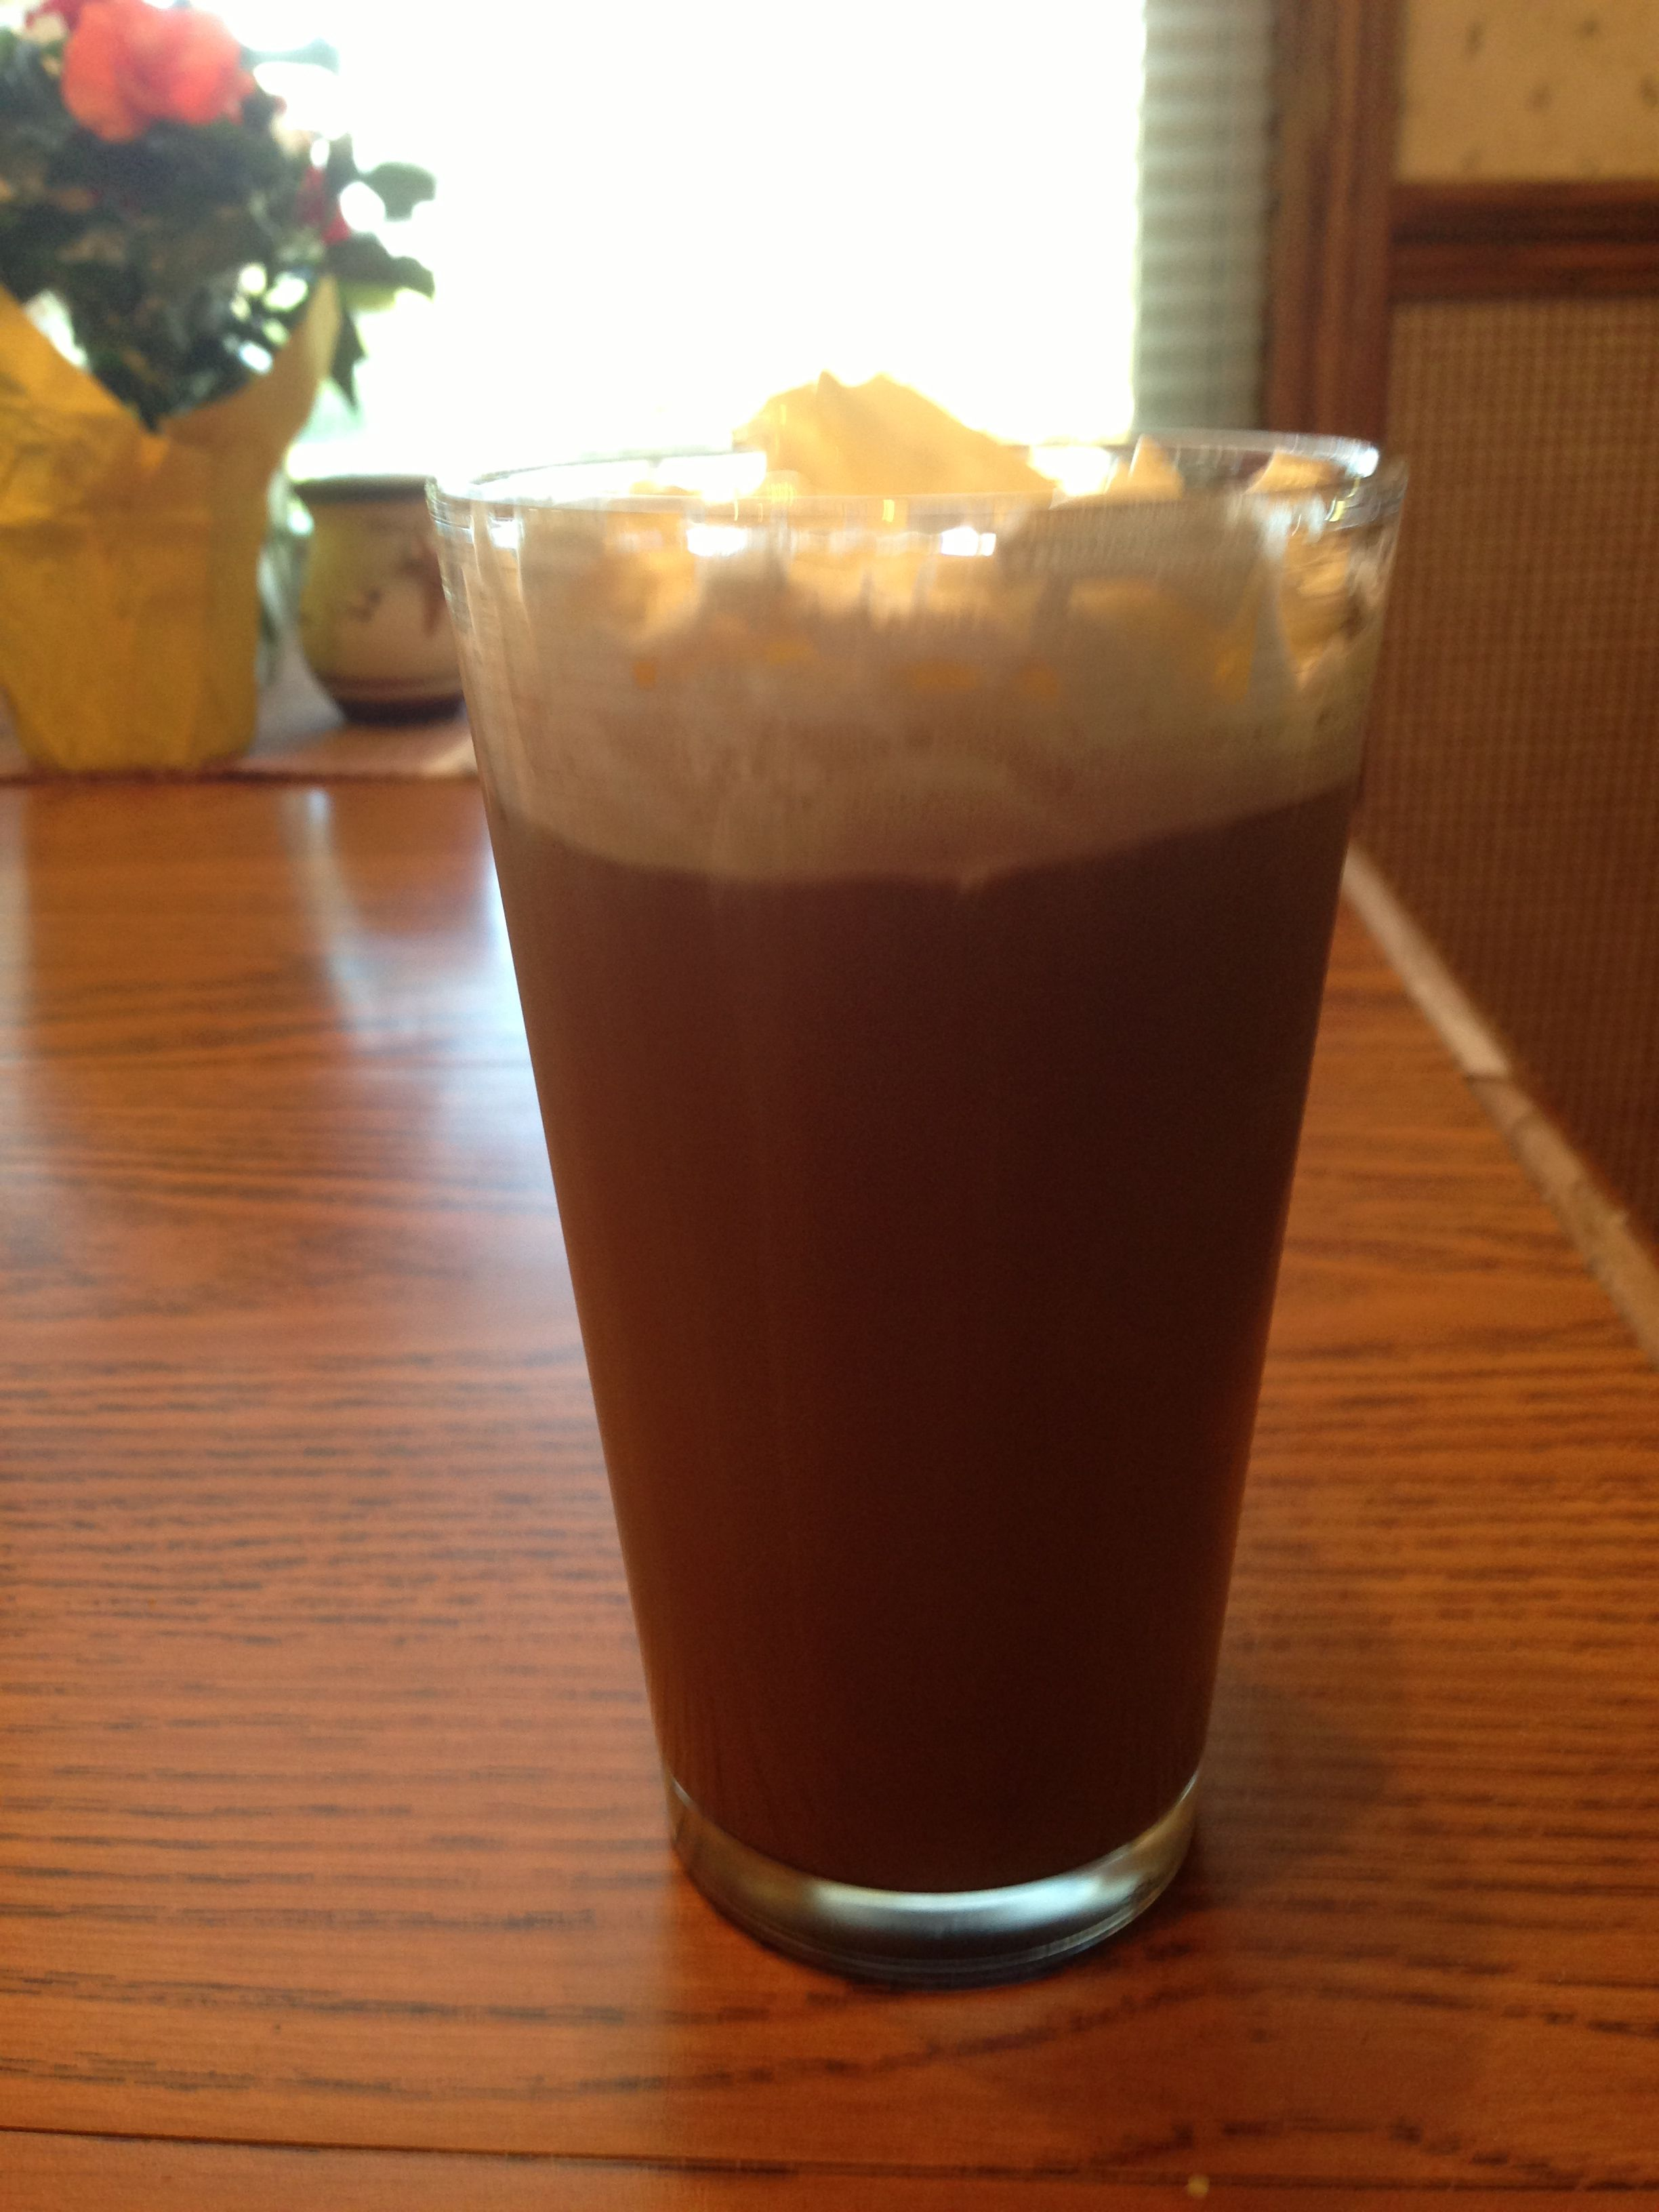 Frappe made in a blender with coffee, chocolate syrup